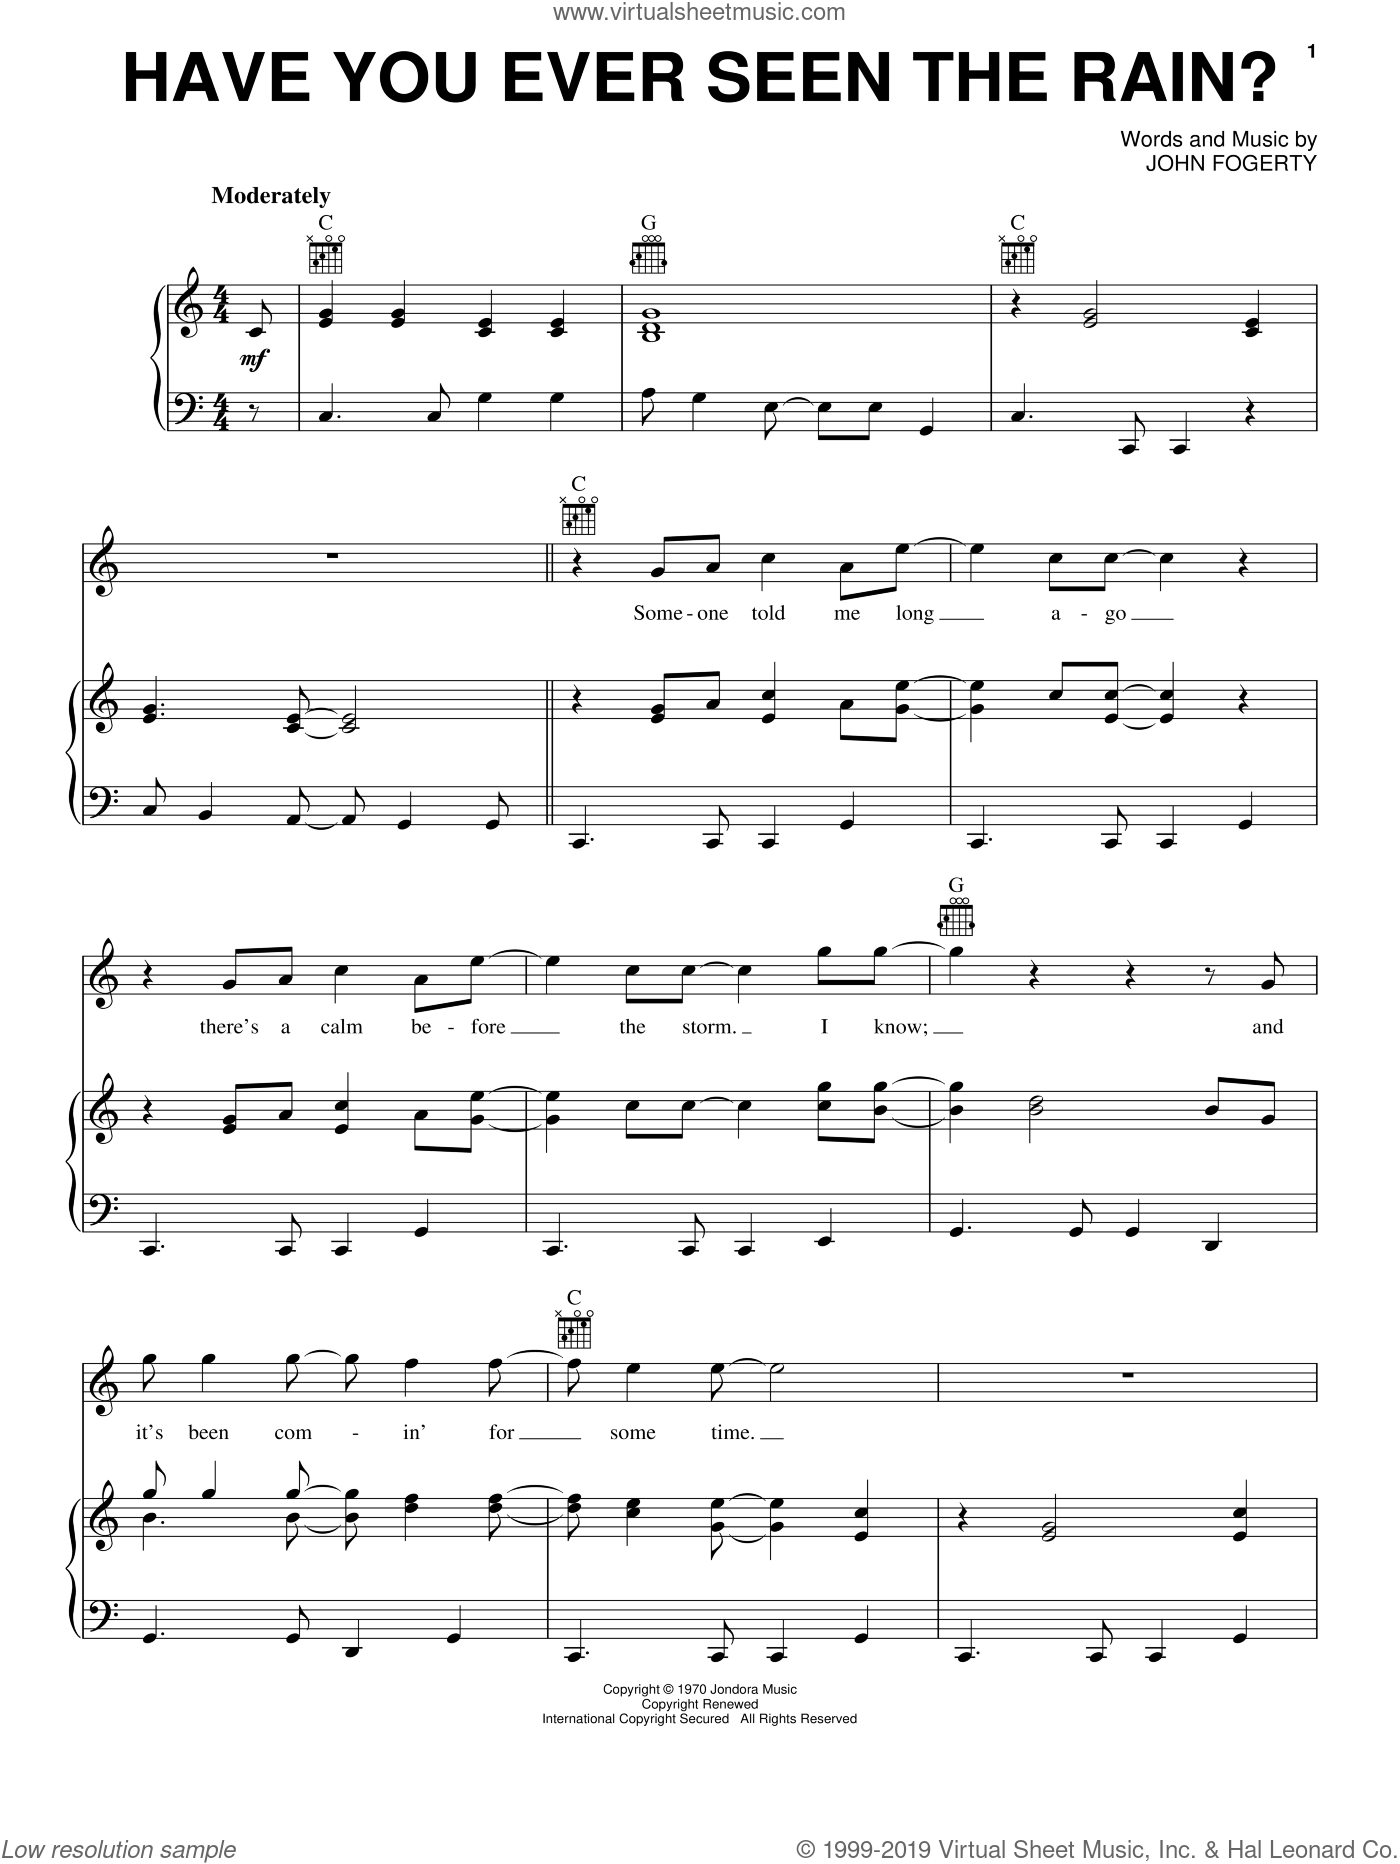 Have You Ever Seen The Rain? sheet music for voice, piano or guitar by Creedence Clearwater Revival and John Fogerty, intermediate skill level